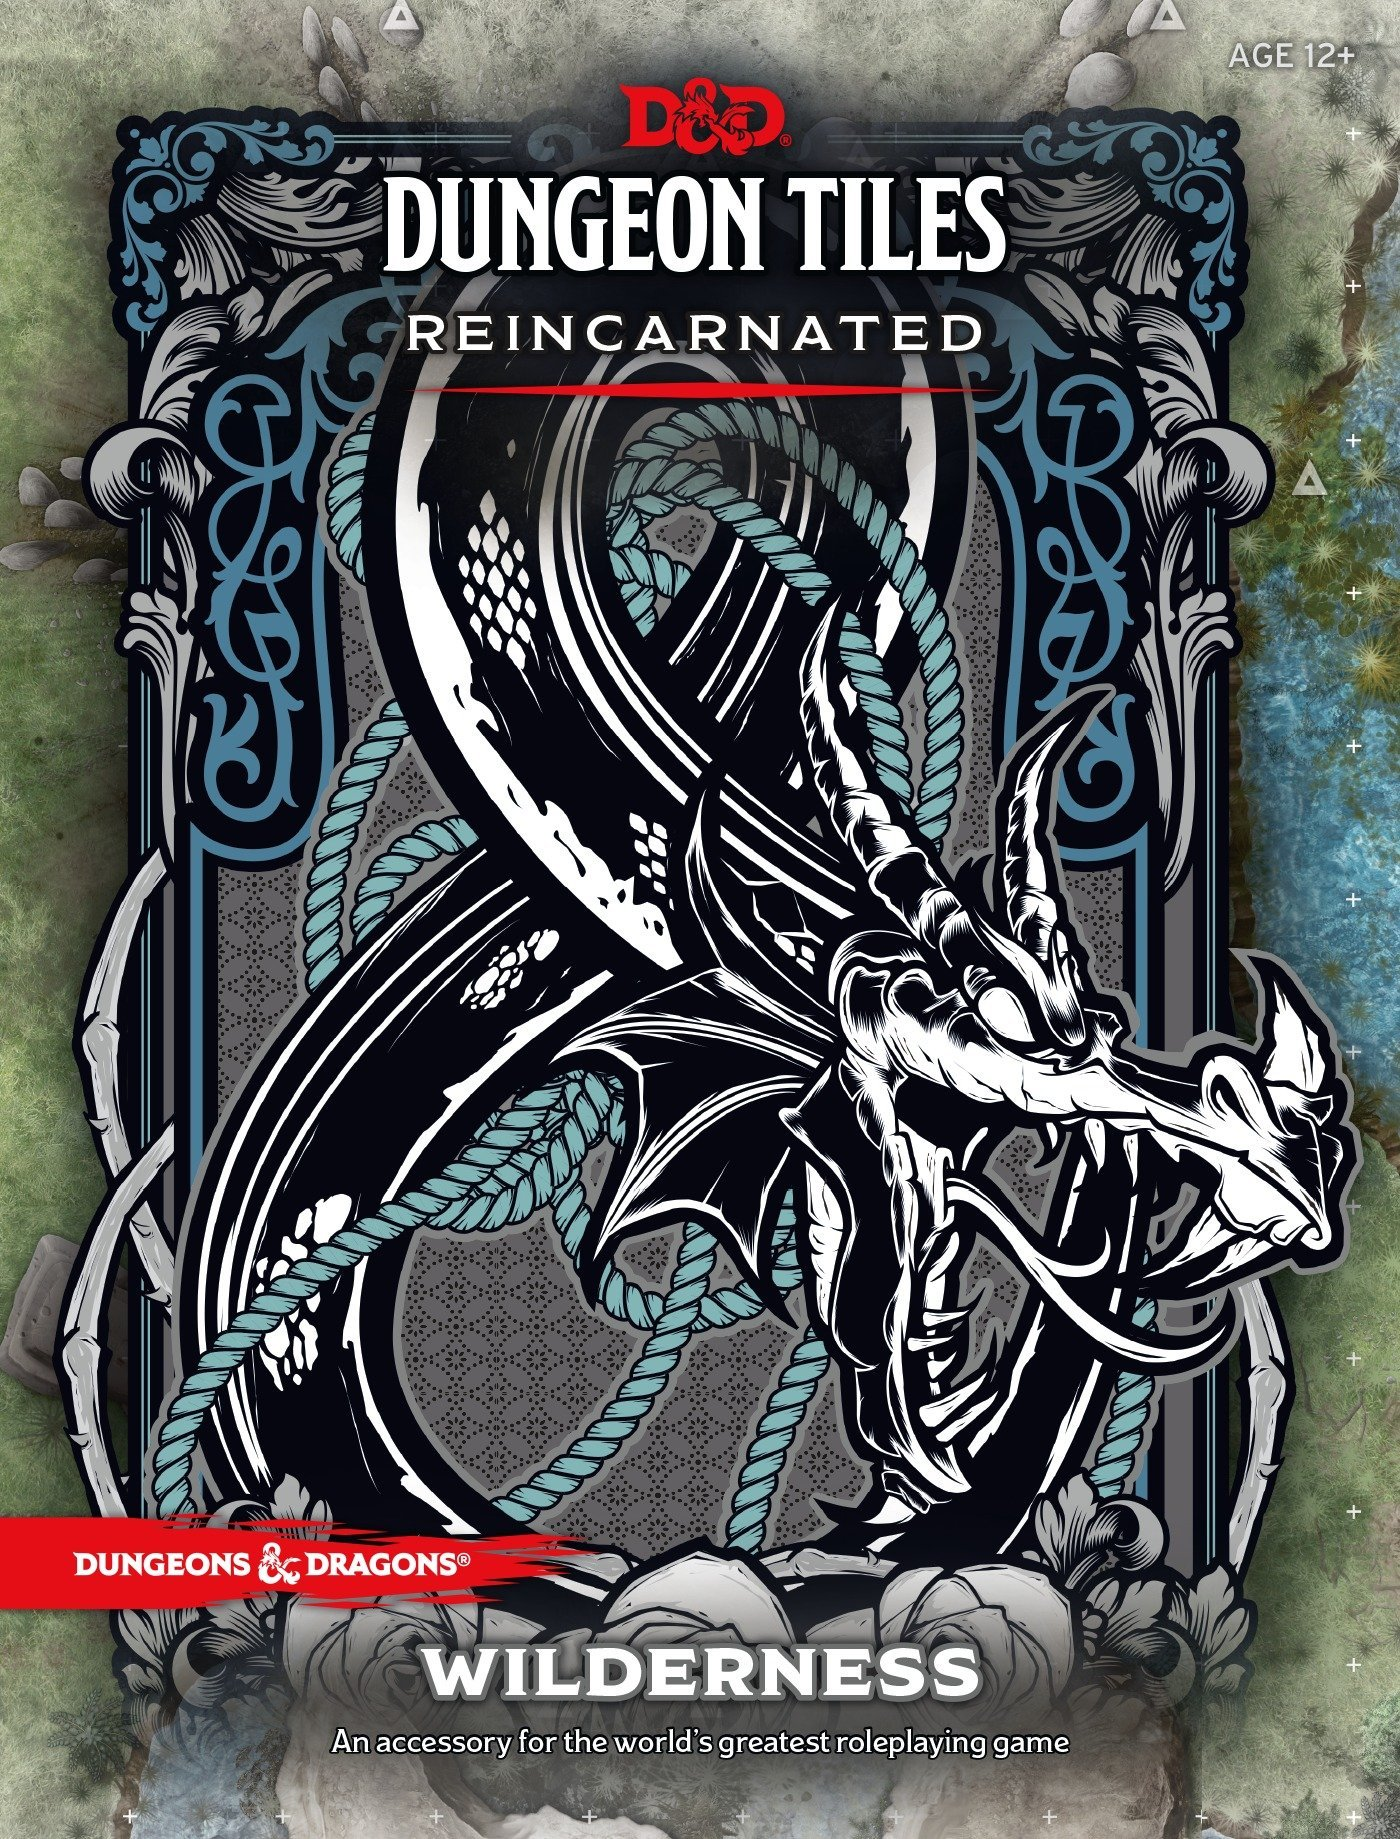 D&D DUNGEON TILES REINCARNATED: WILDERNESS by Dungeons & Dragons